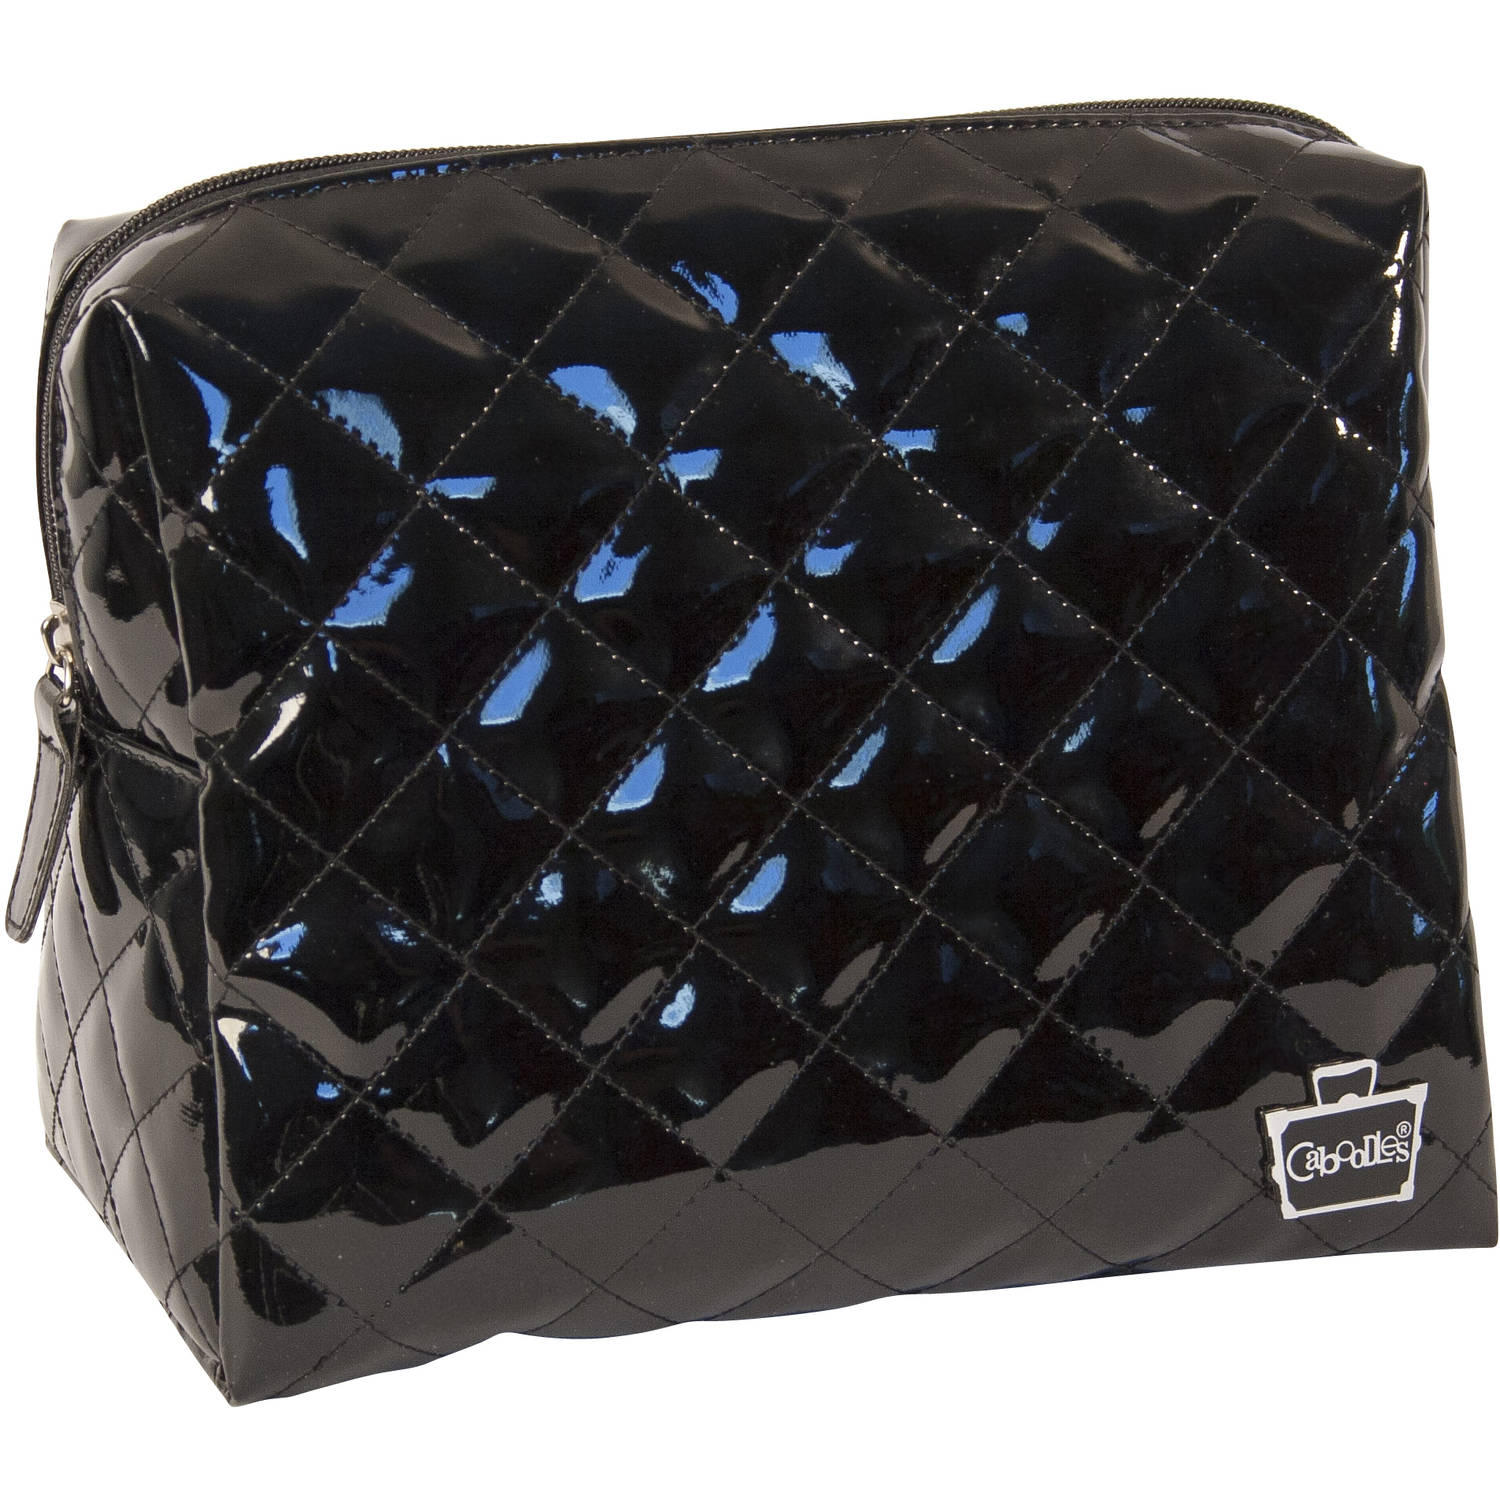 Caboodles Black Diamond Collection Large Cosmetic Bag, Black